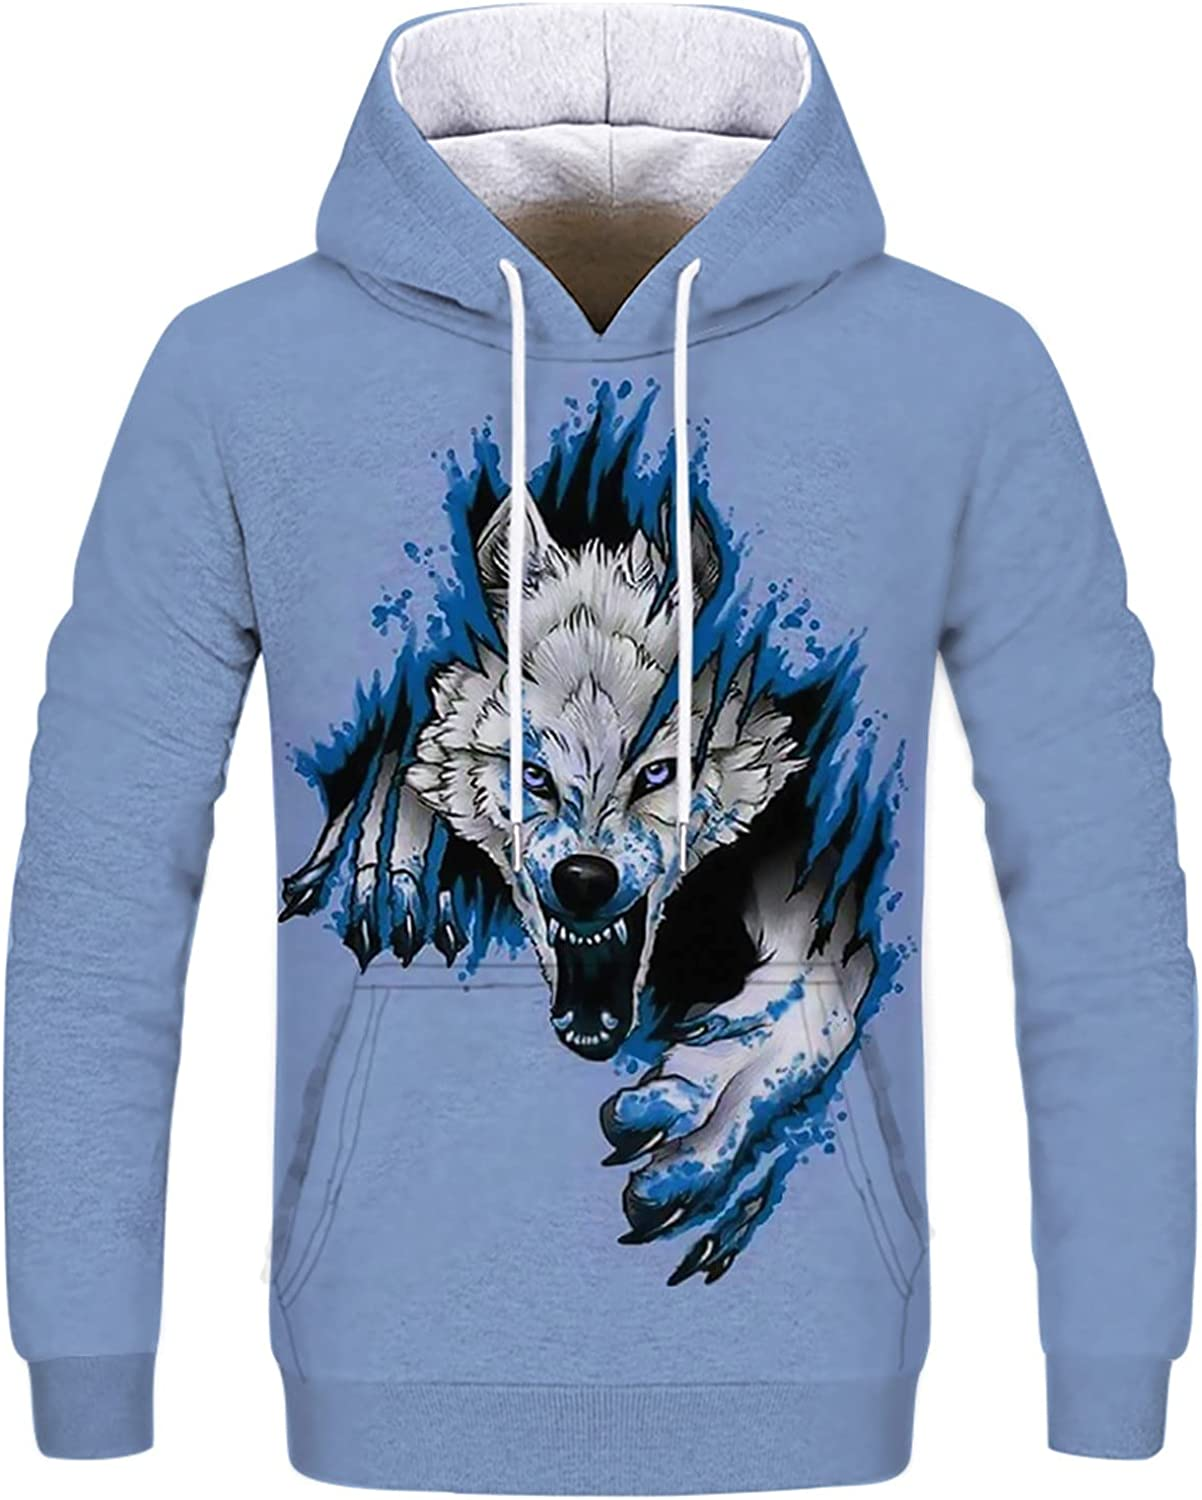 Mens Fashion 3D Wolf Pattern Printed Hoodies Blouse Winter Thick Sweatshirts Casual Long Sleeve Pullover Sweater